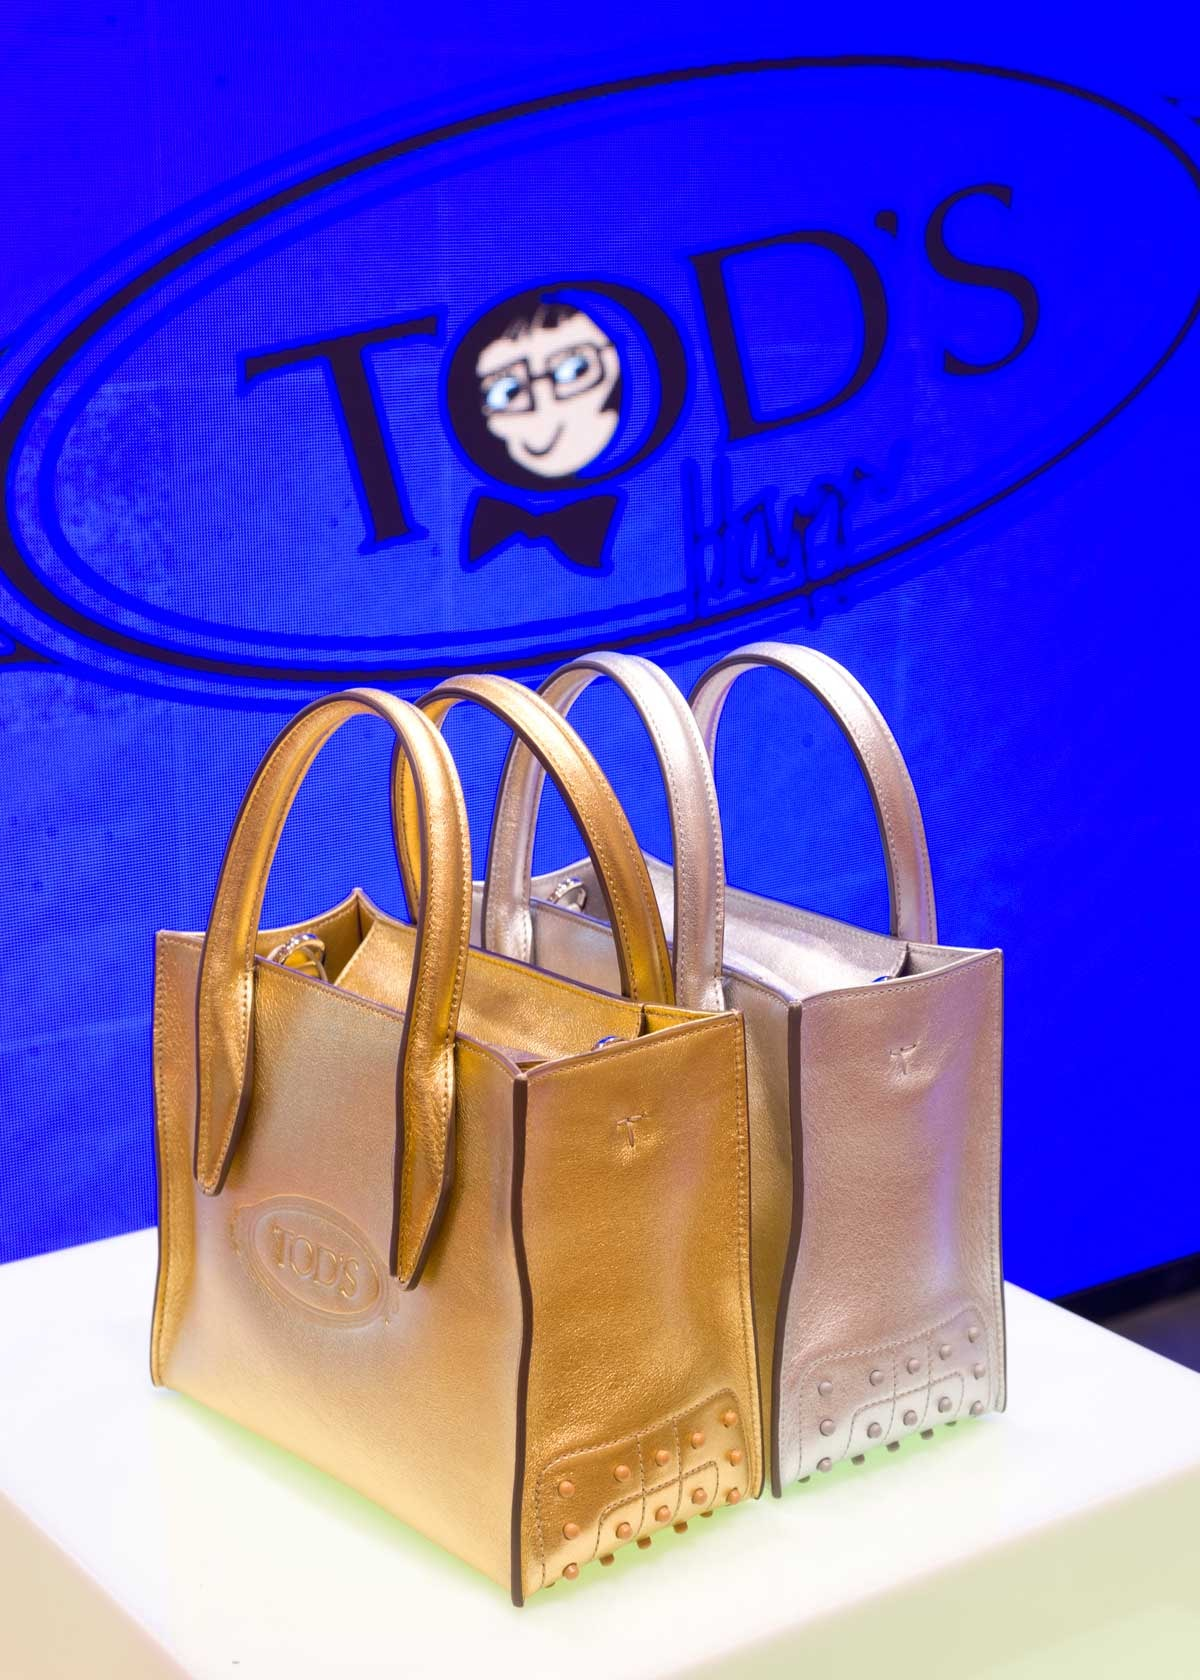 Le pop-up de la collaboration Alber Elbaz x Tod's aux Galeries Lafayette